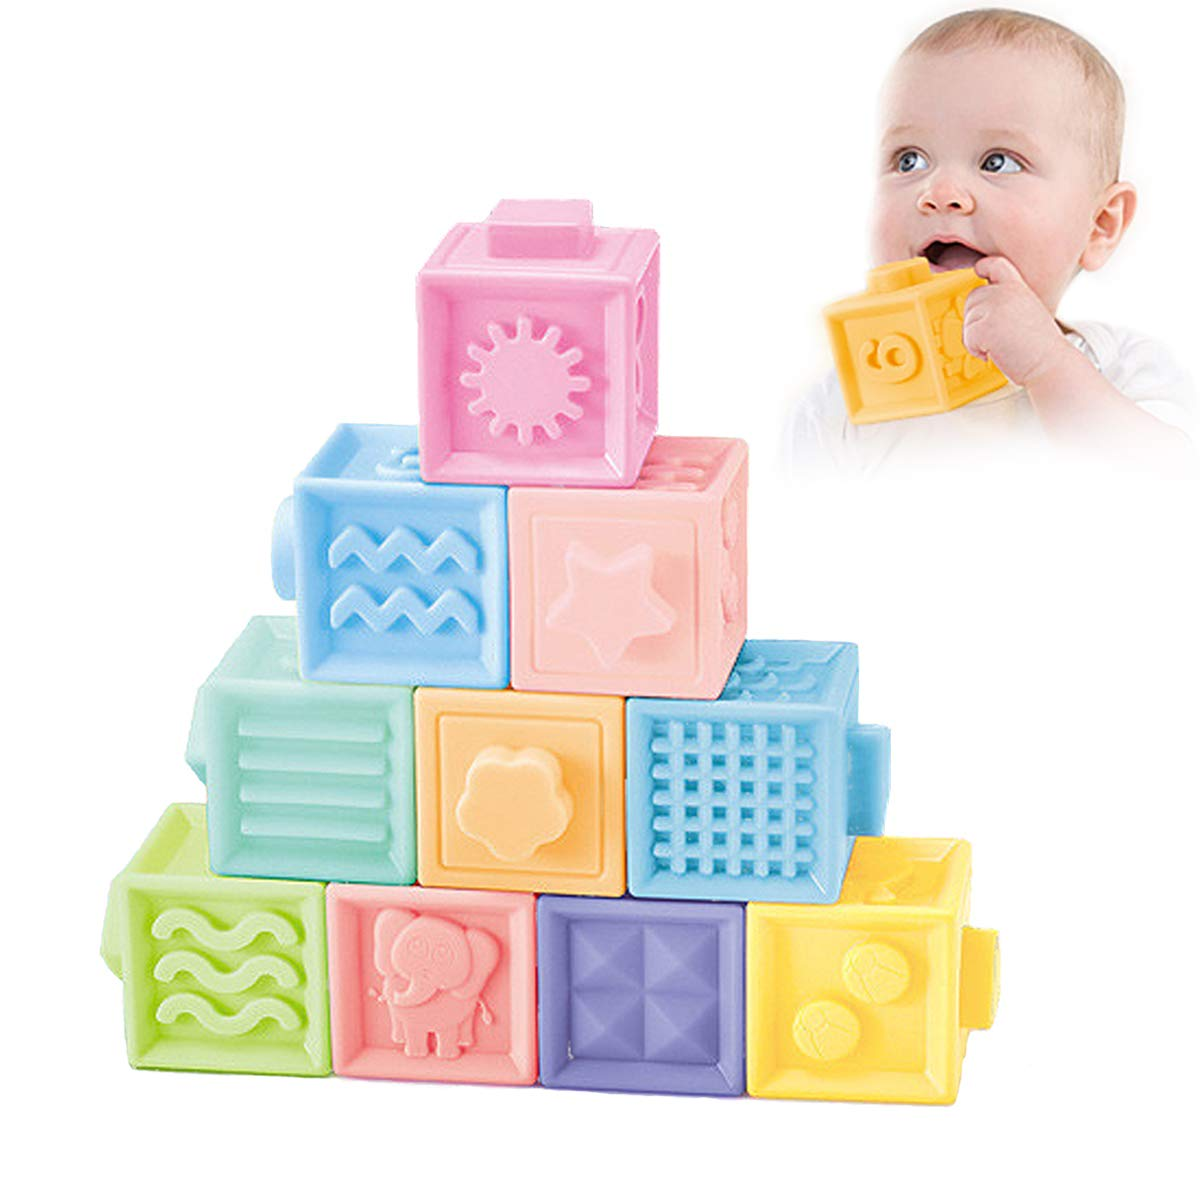 NUOEY Baby Blocks Soft Building Blocks Teething Chewing Toys Early Educational Squeeze Stackable Baby Toys Play with Number,Animals,Textures and Matching Game for 0-3 Years